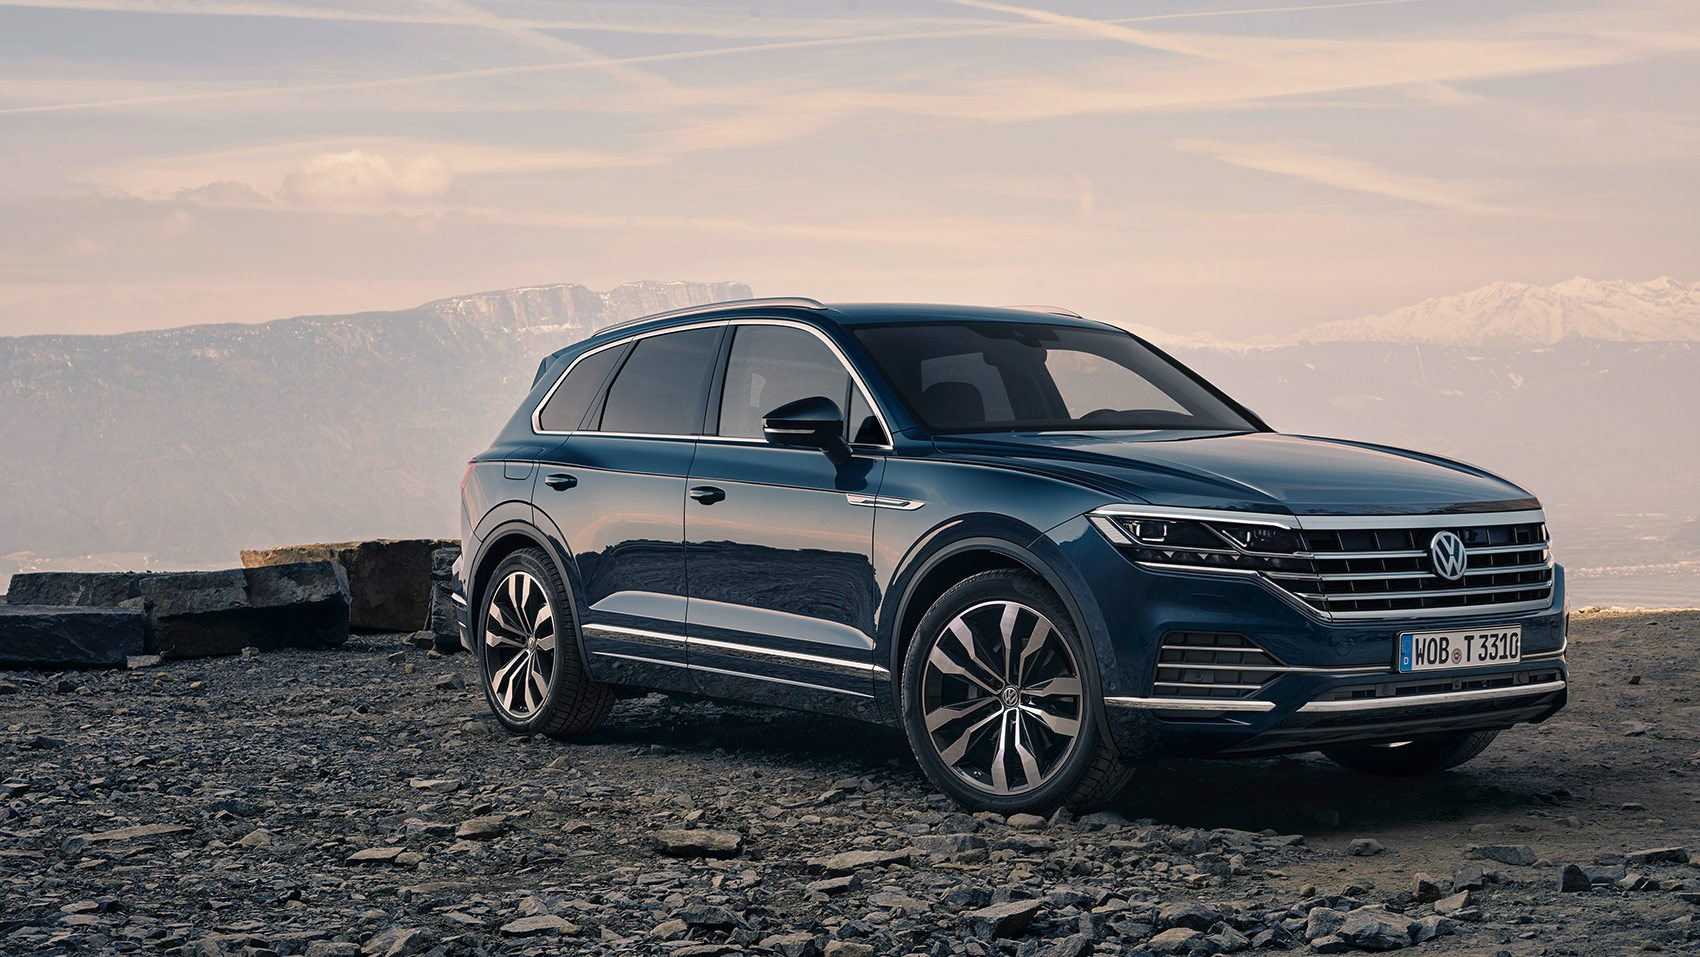 VW Touareg review (2018): specs prices on sale date | CAR ...